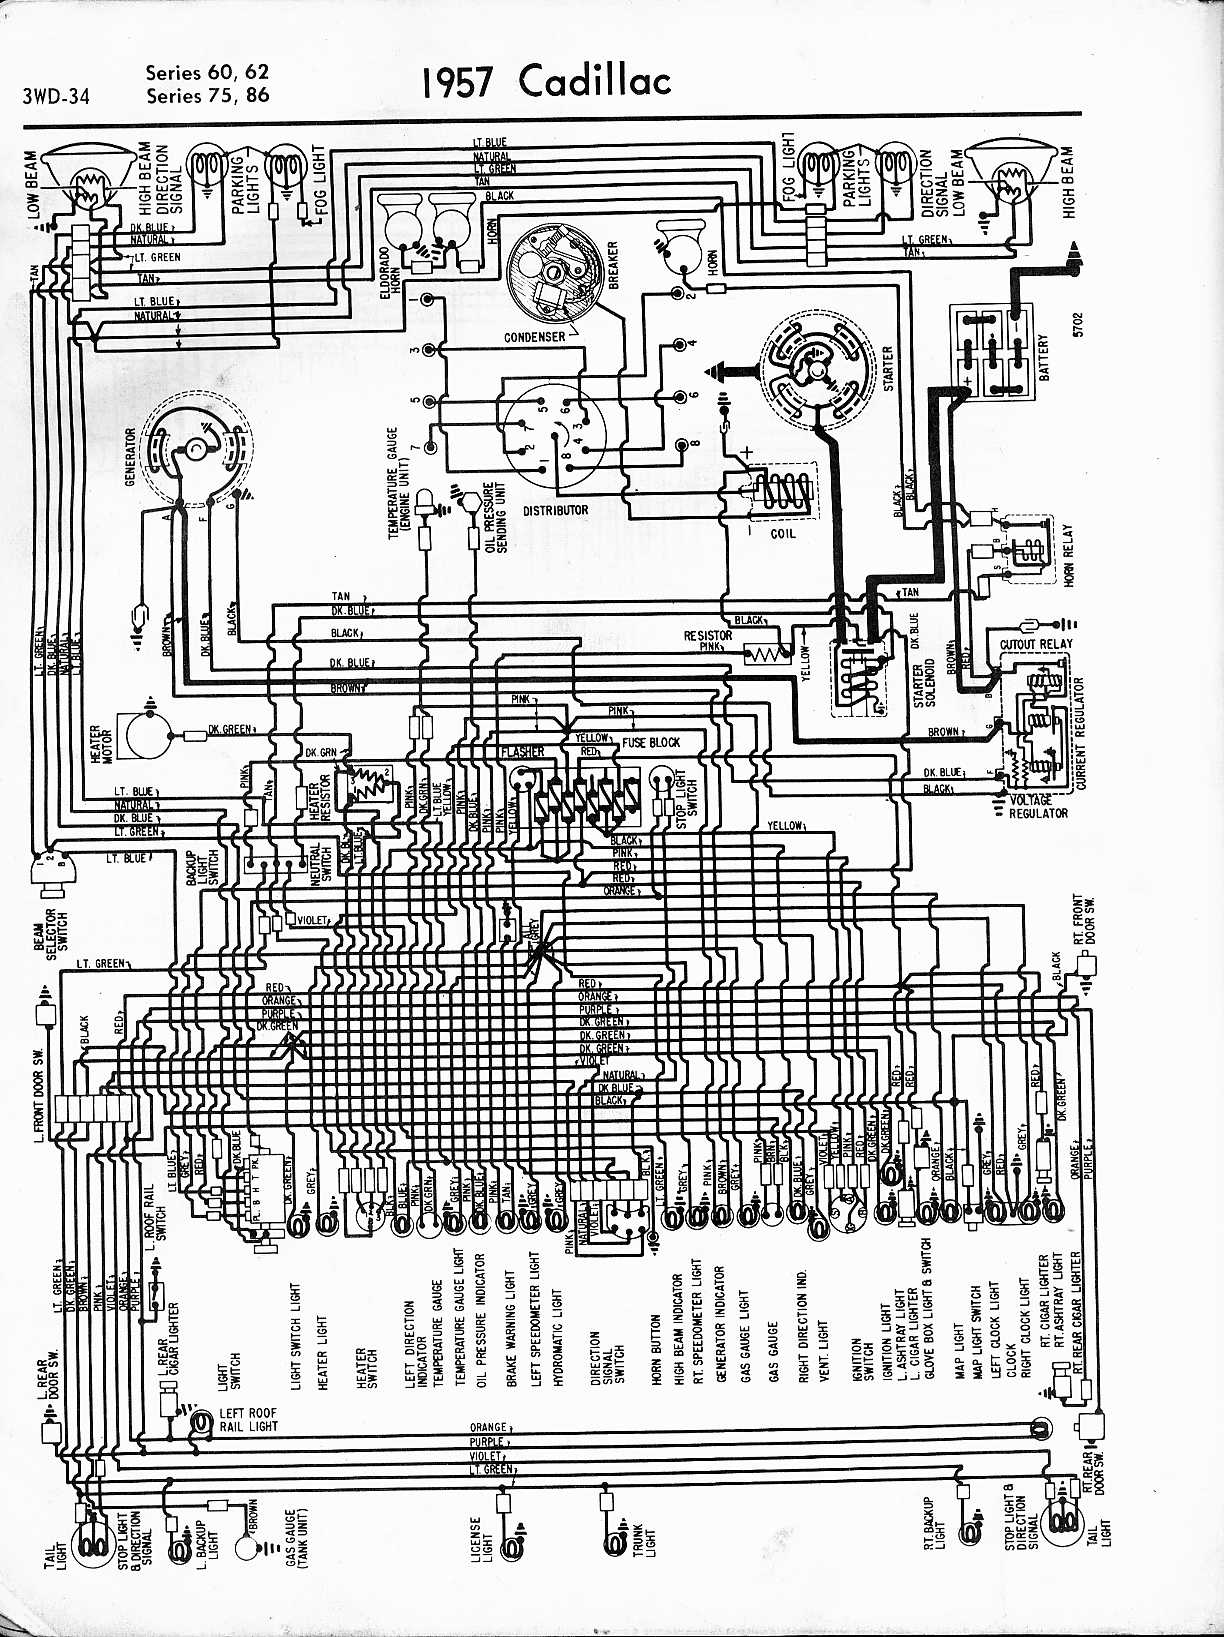 1963 Cadillac Deville Wire Diagram Wiring Data 1970 Gmc Pickup Diagrams 1957 1965 Convertible